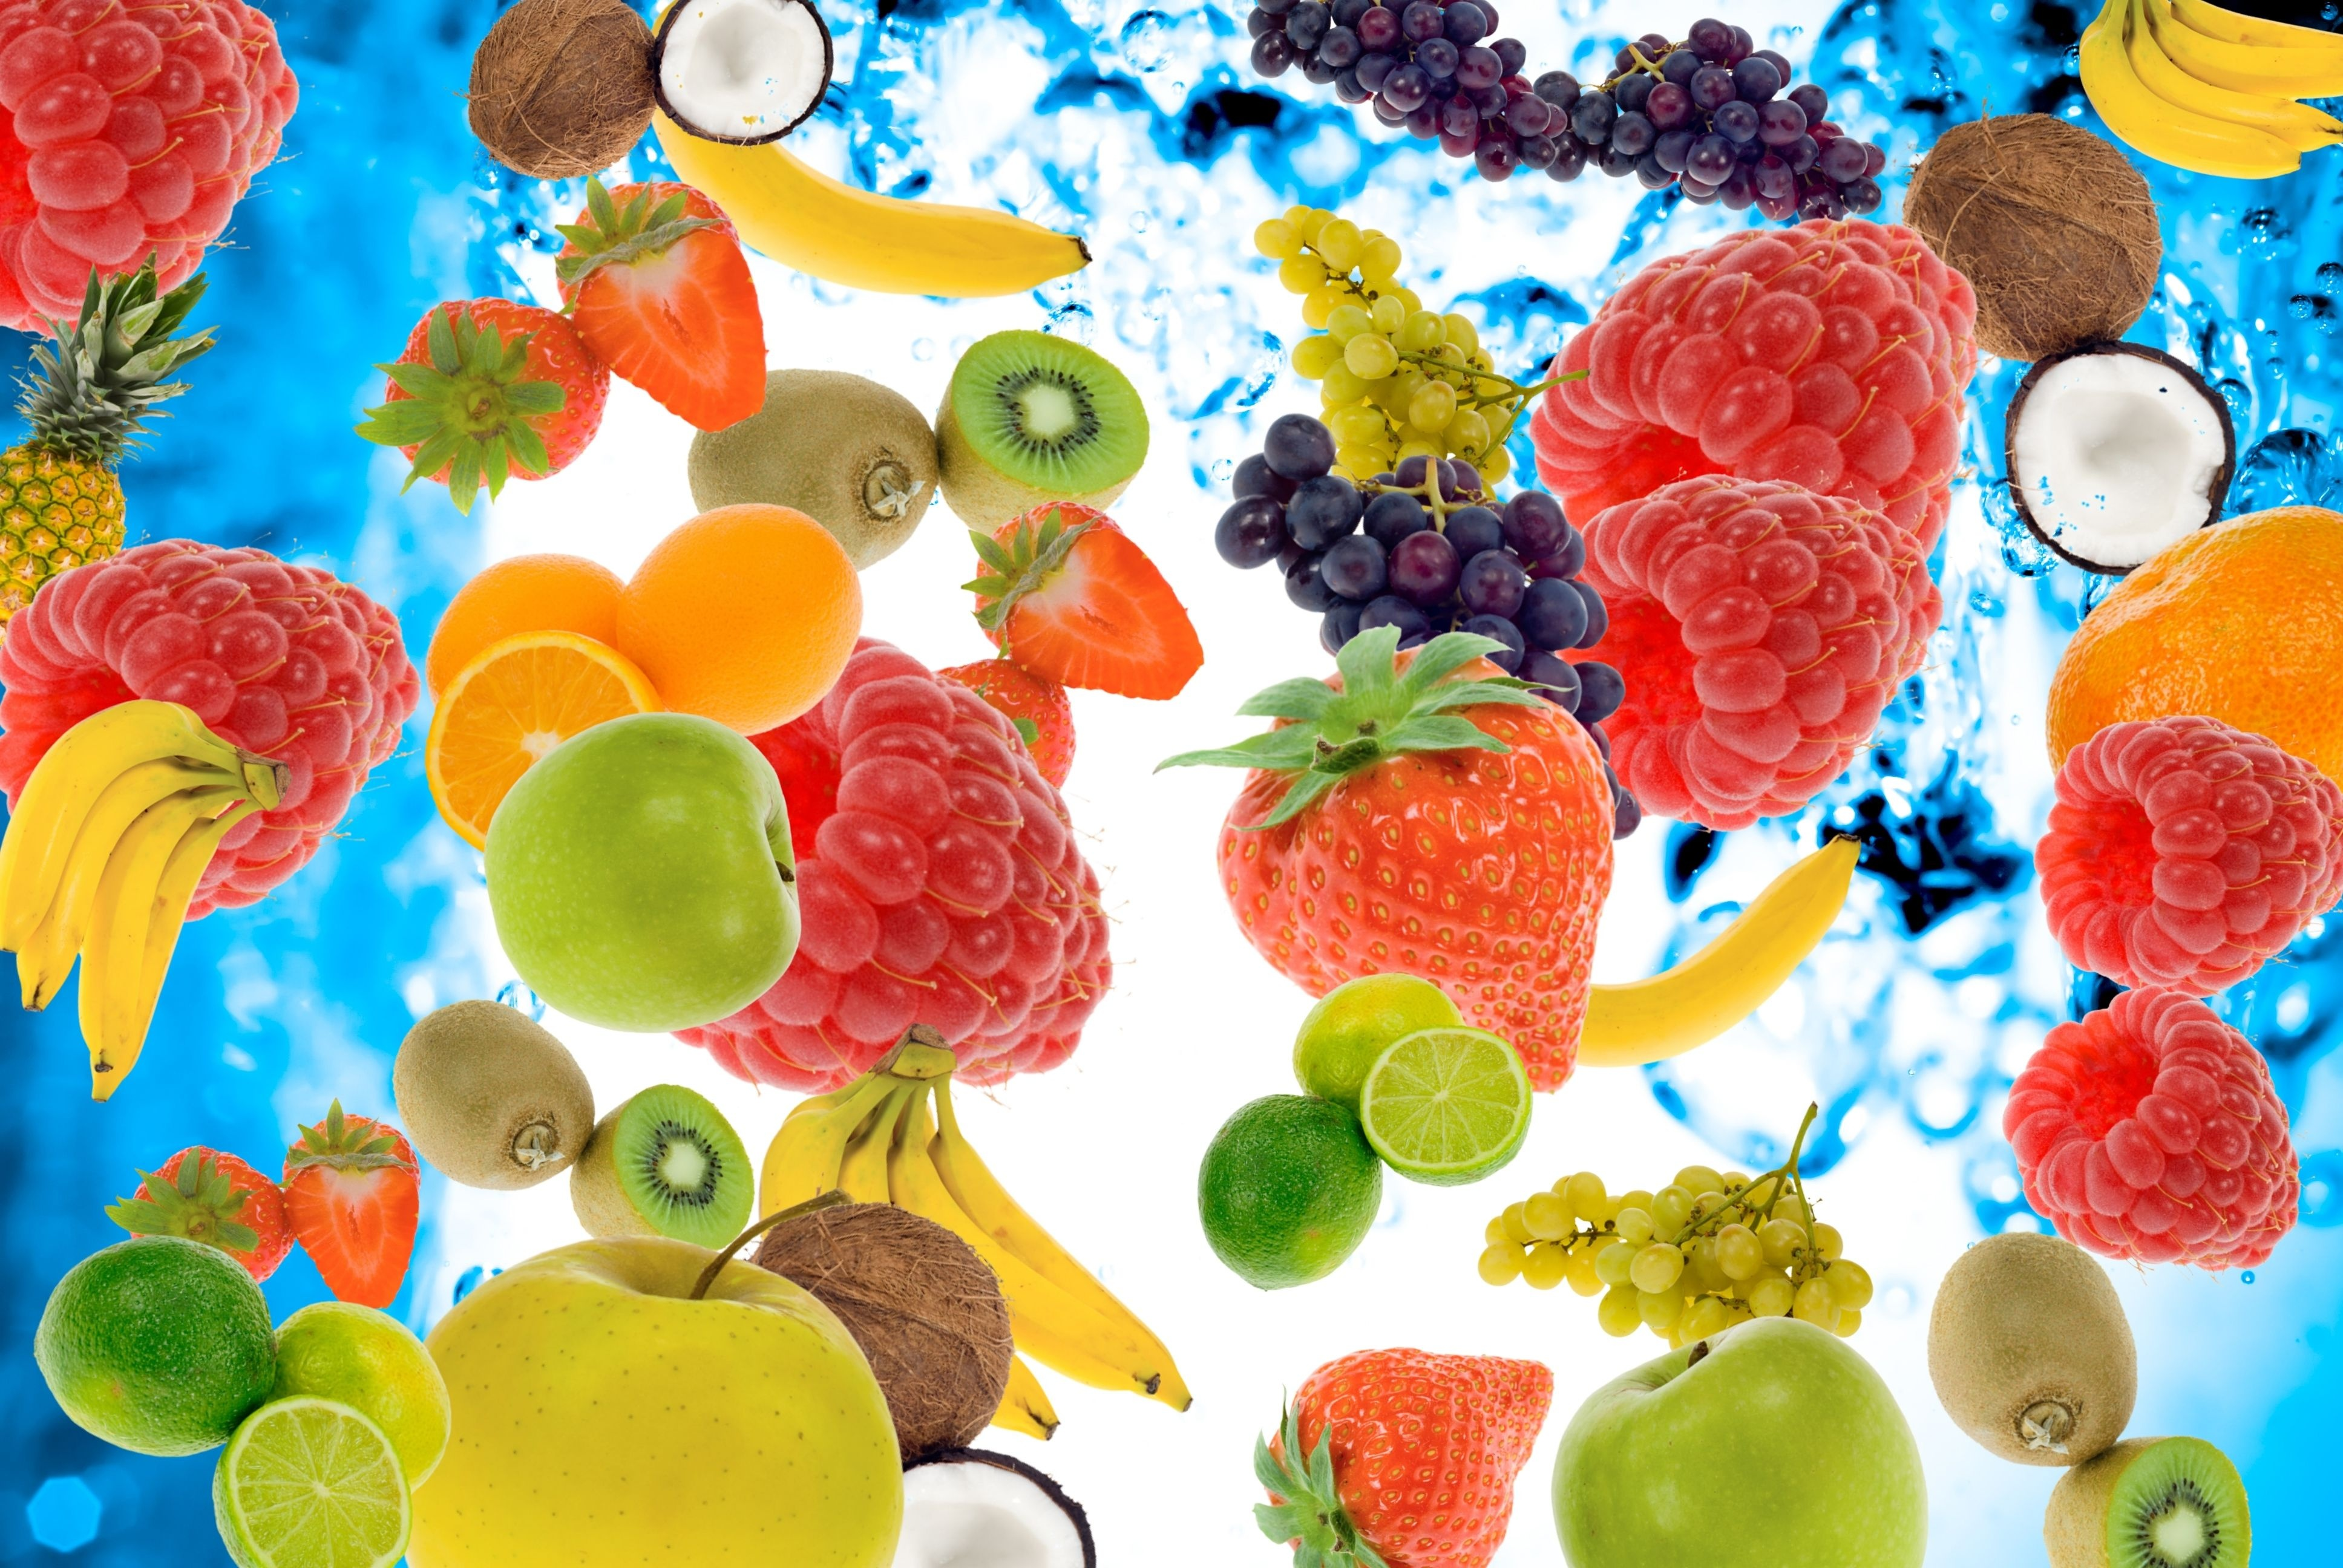 435 Fruit Hd Wallpapers Background Images Wallpaper Abyss